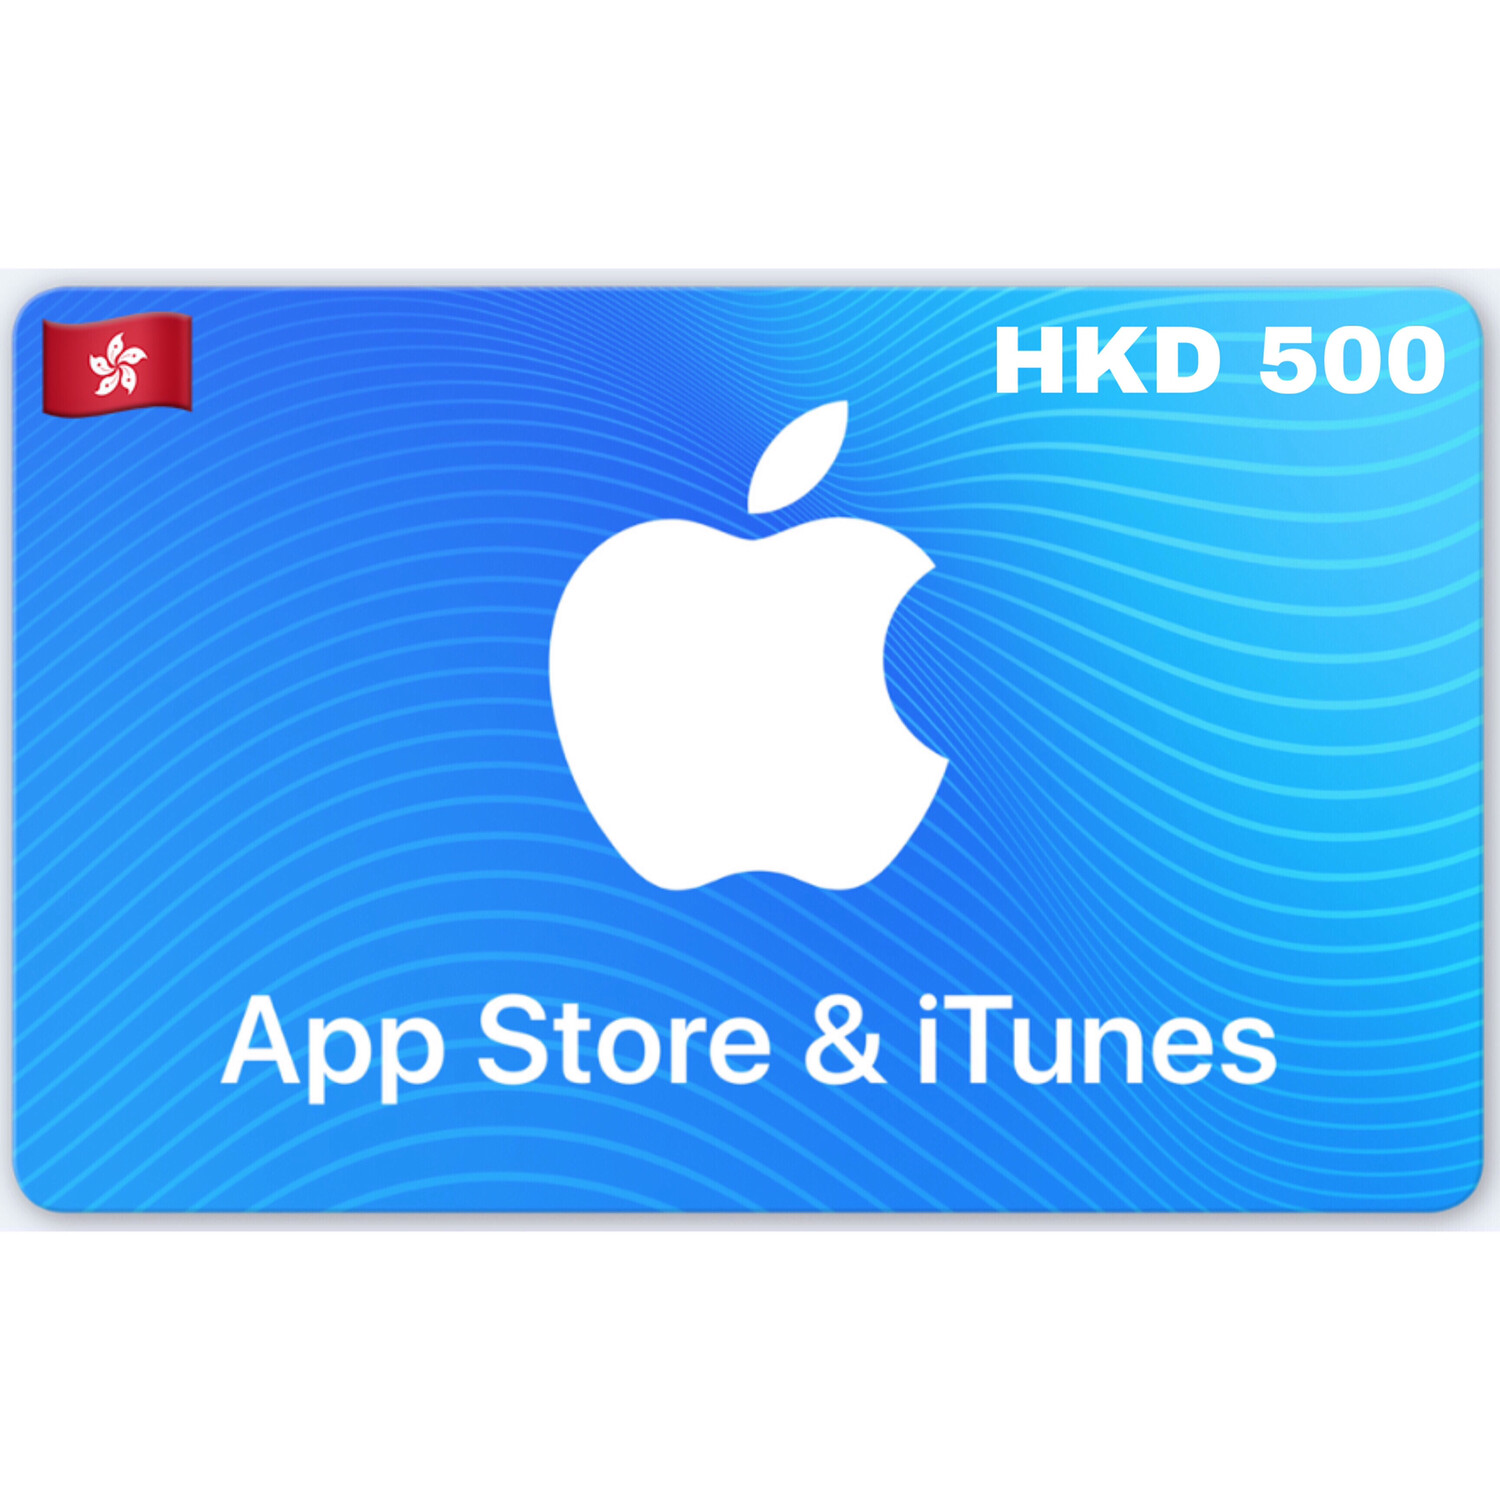 Apple App Store & iTunes Gift Card Hongkong HKD 500